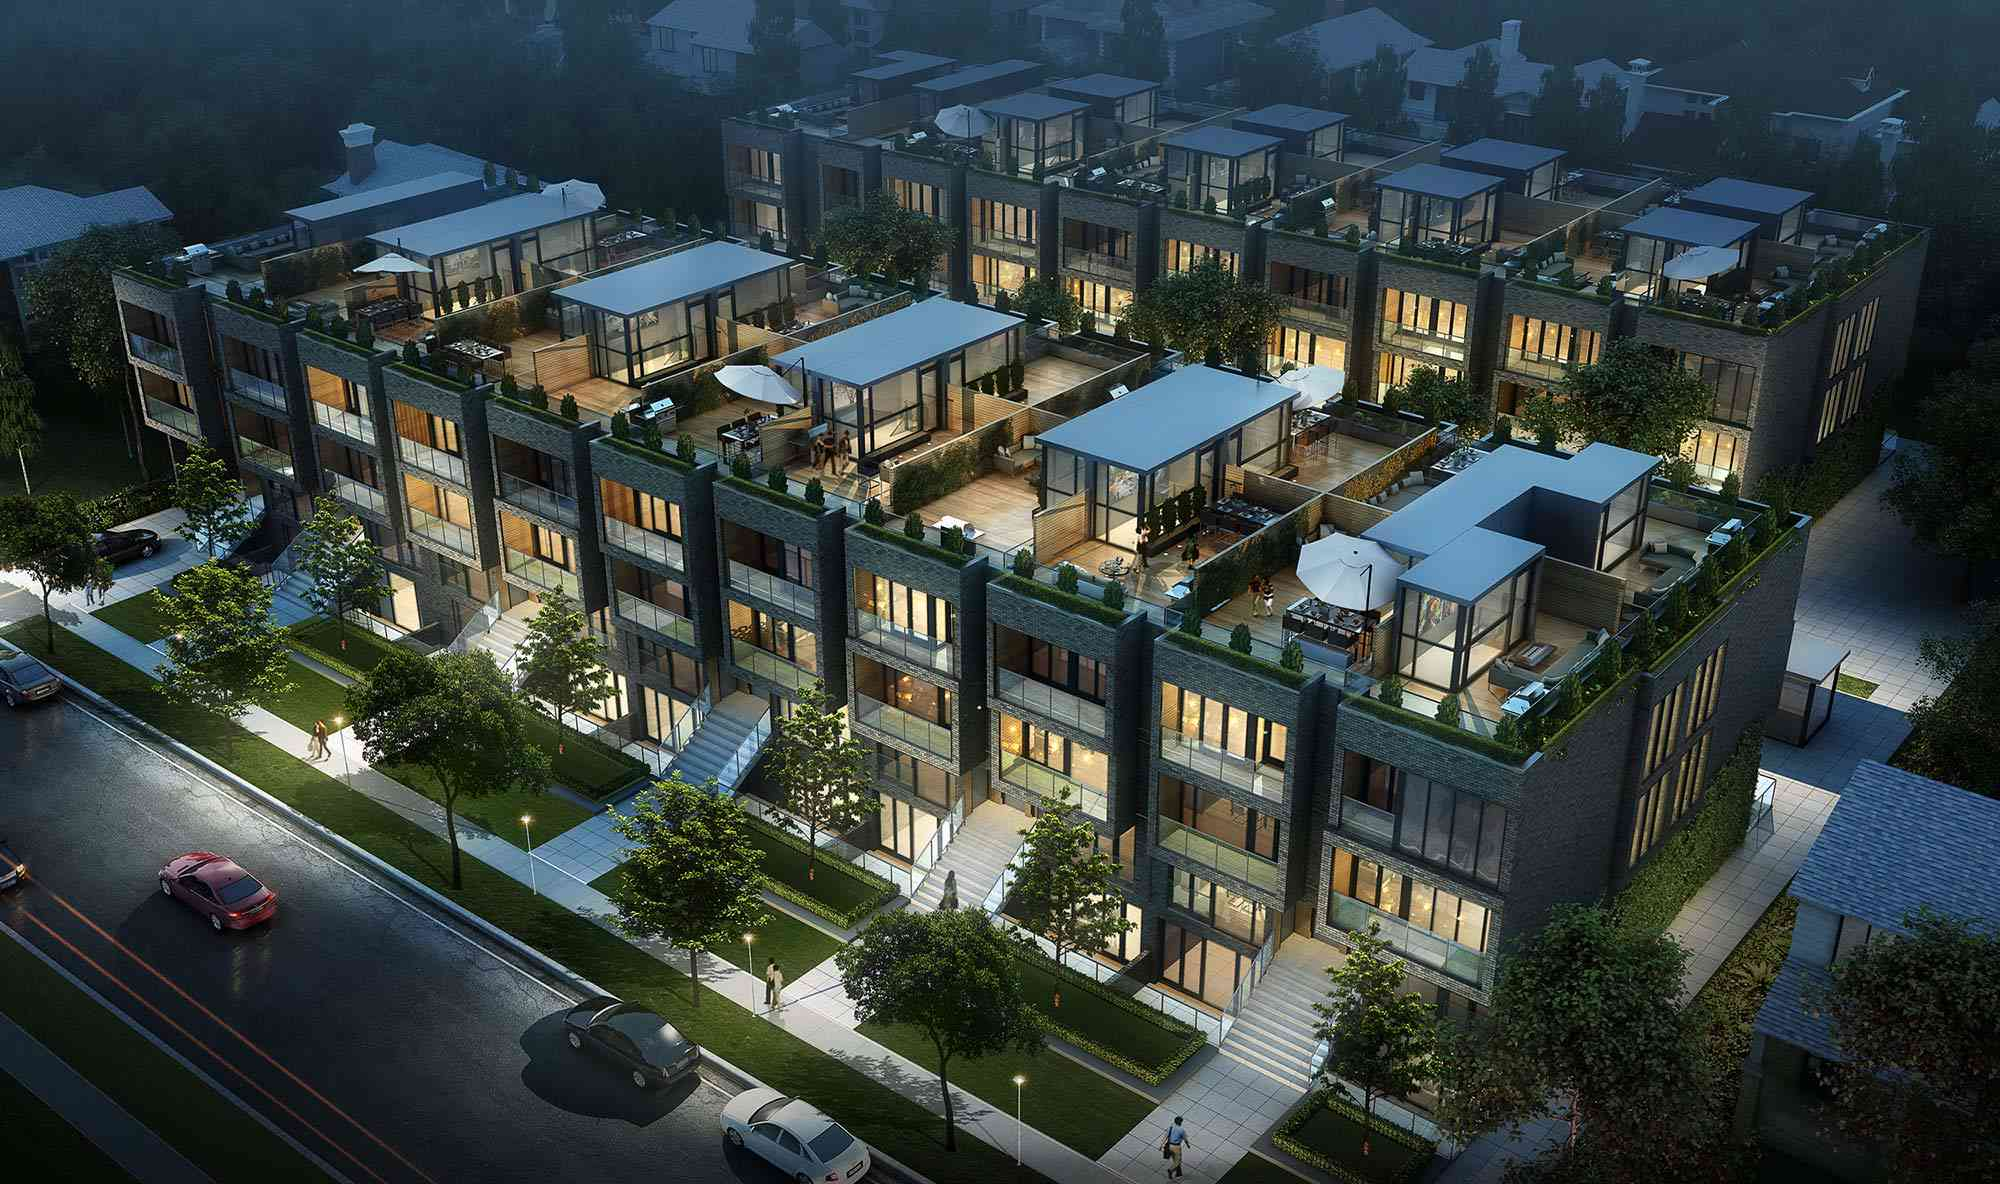 sherwood park housing from above